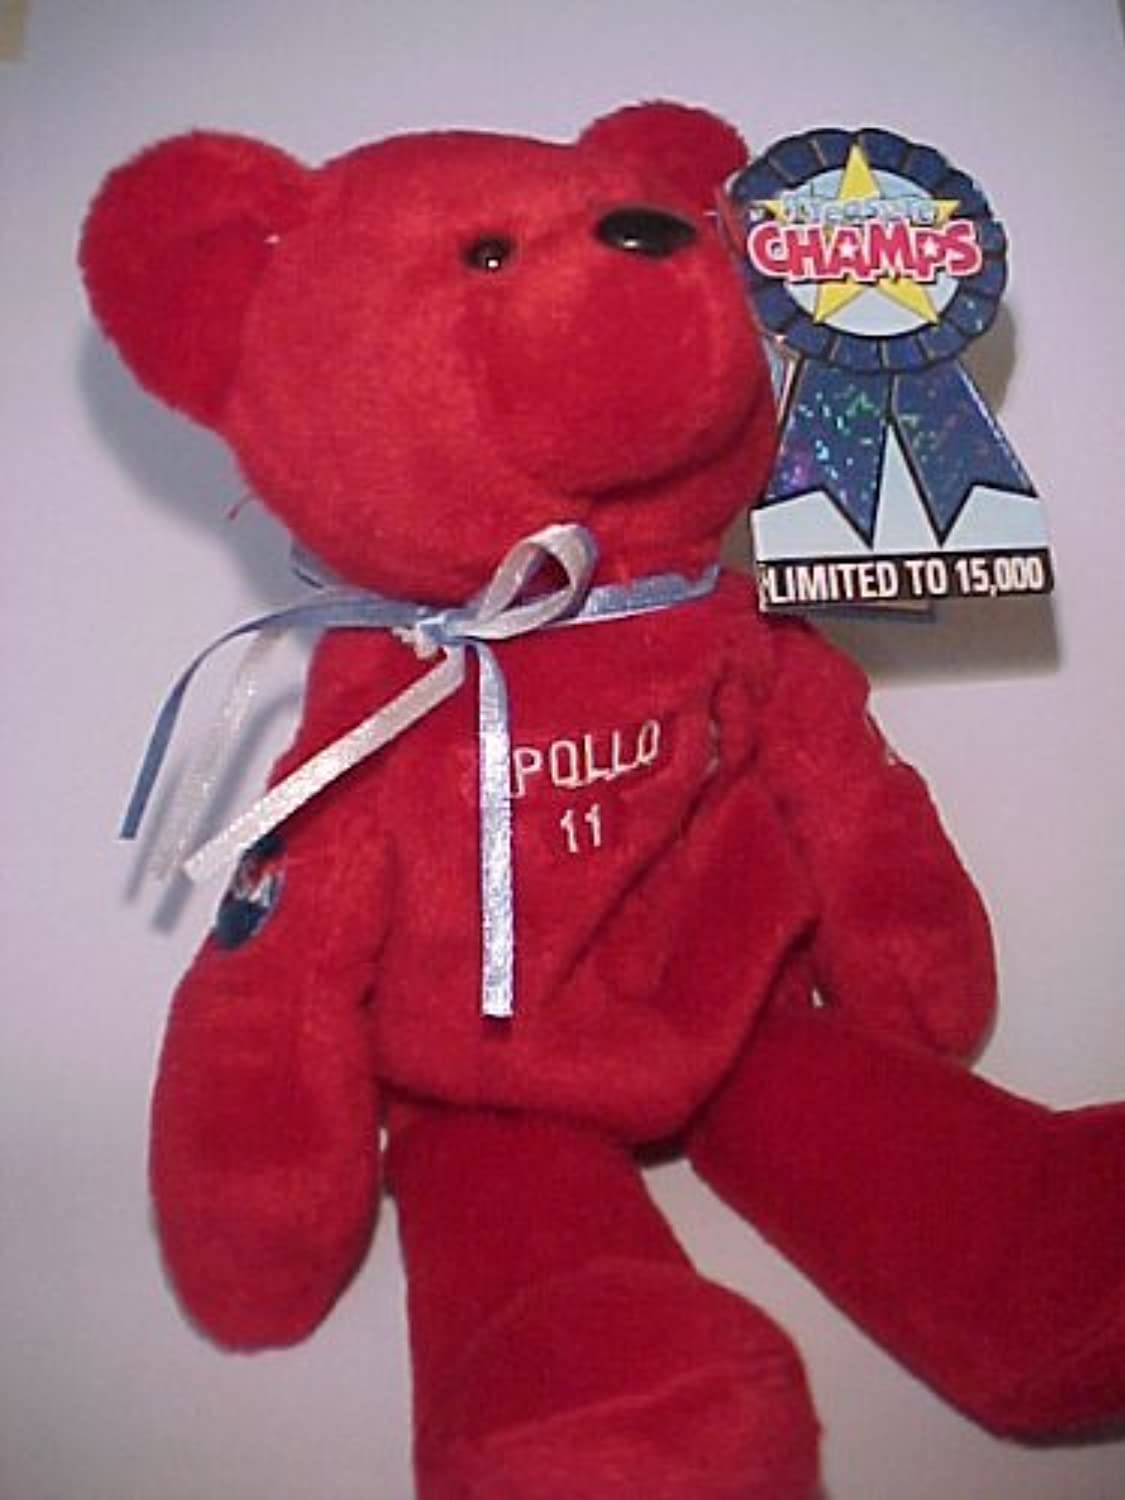 Treasure Champs Apollo 11 30 Year Anniversay 1969-1999 1st Generation Liftoff rot Bear Limited to 15,000 by Liftoff